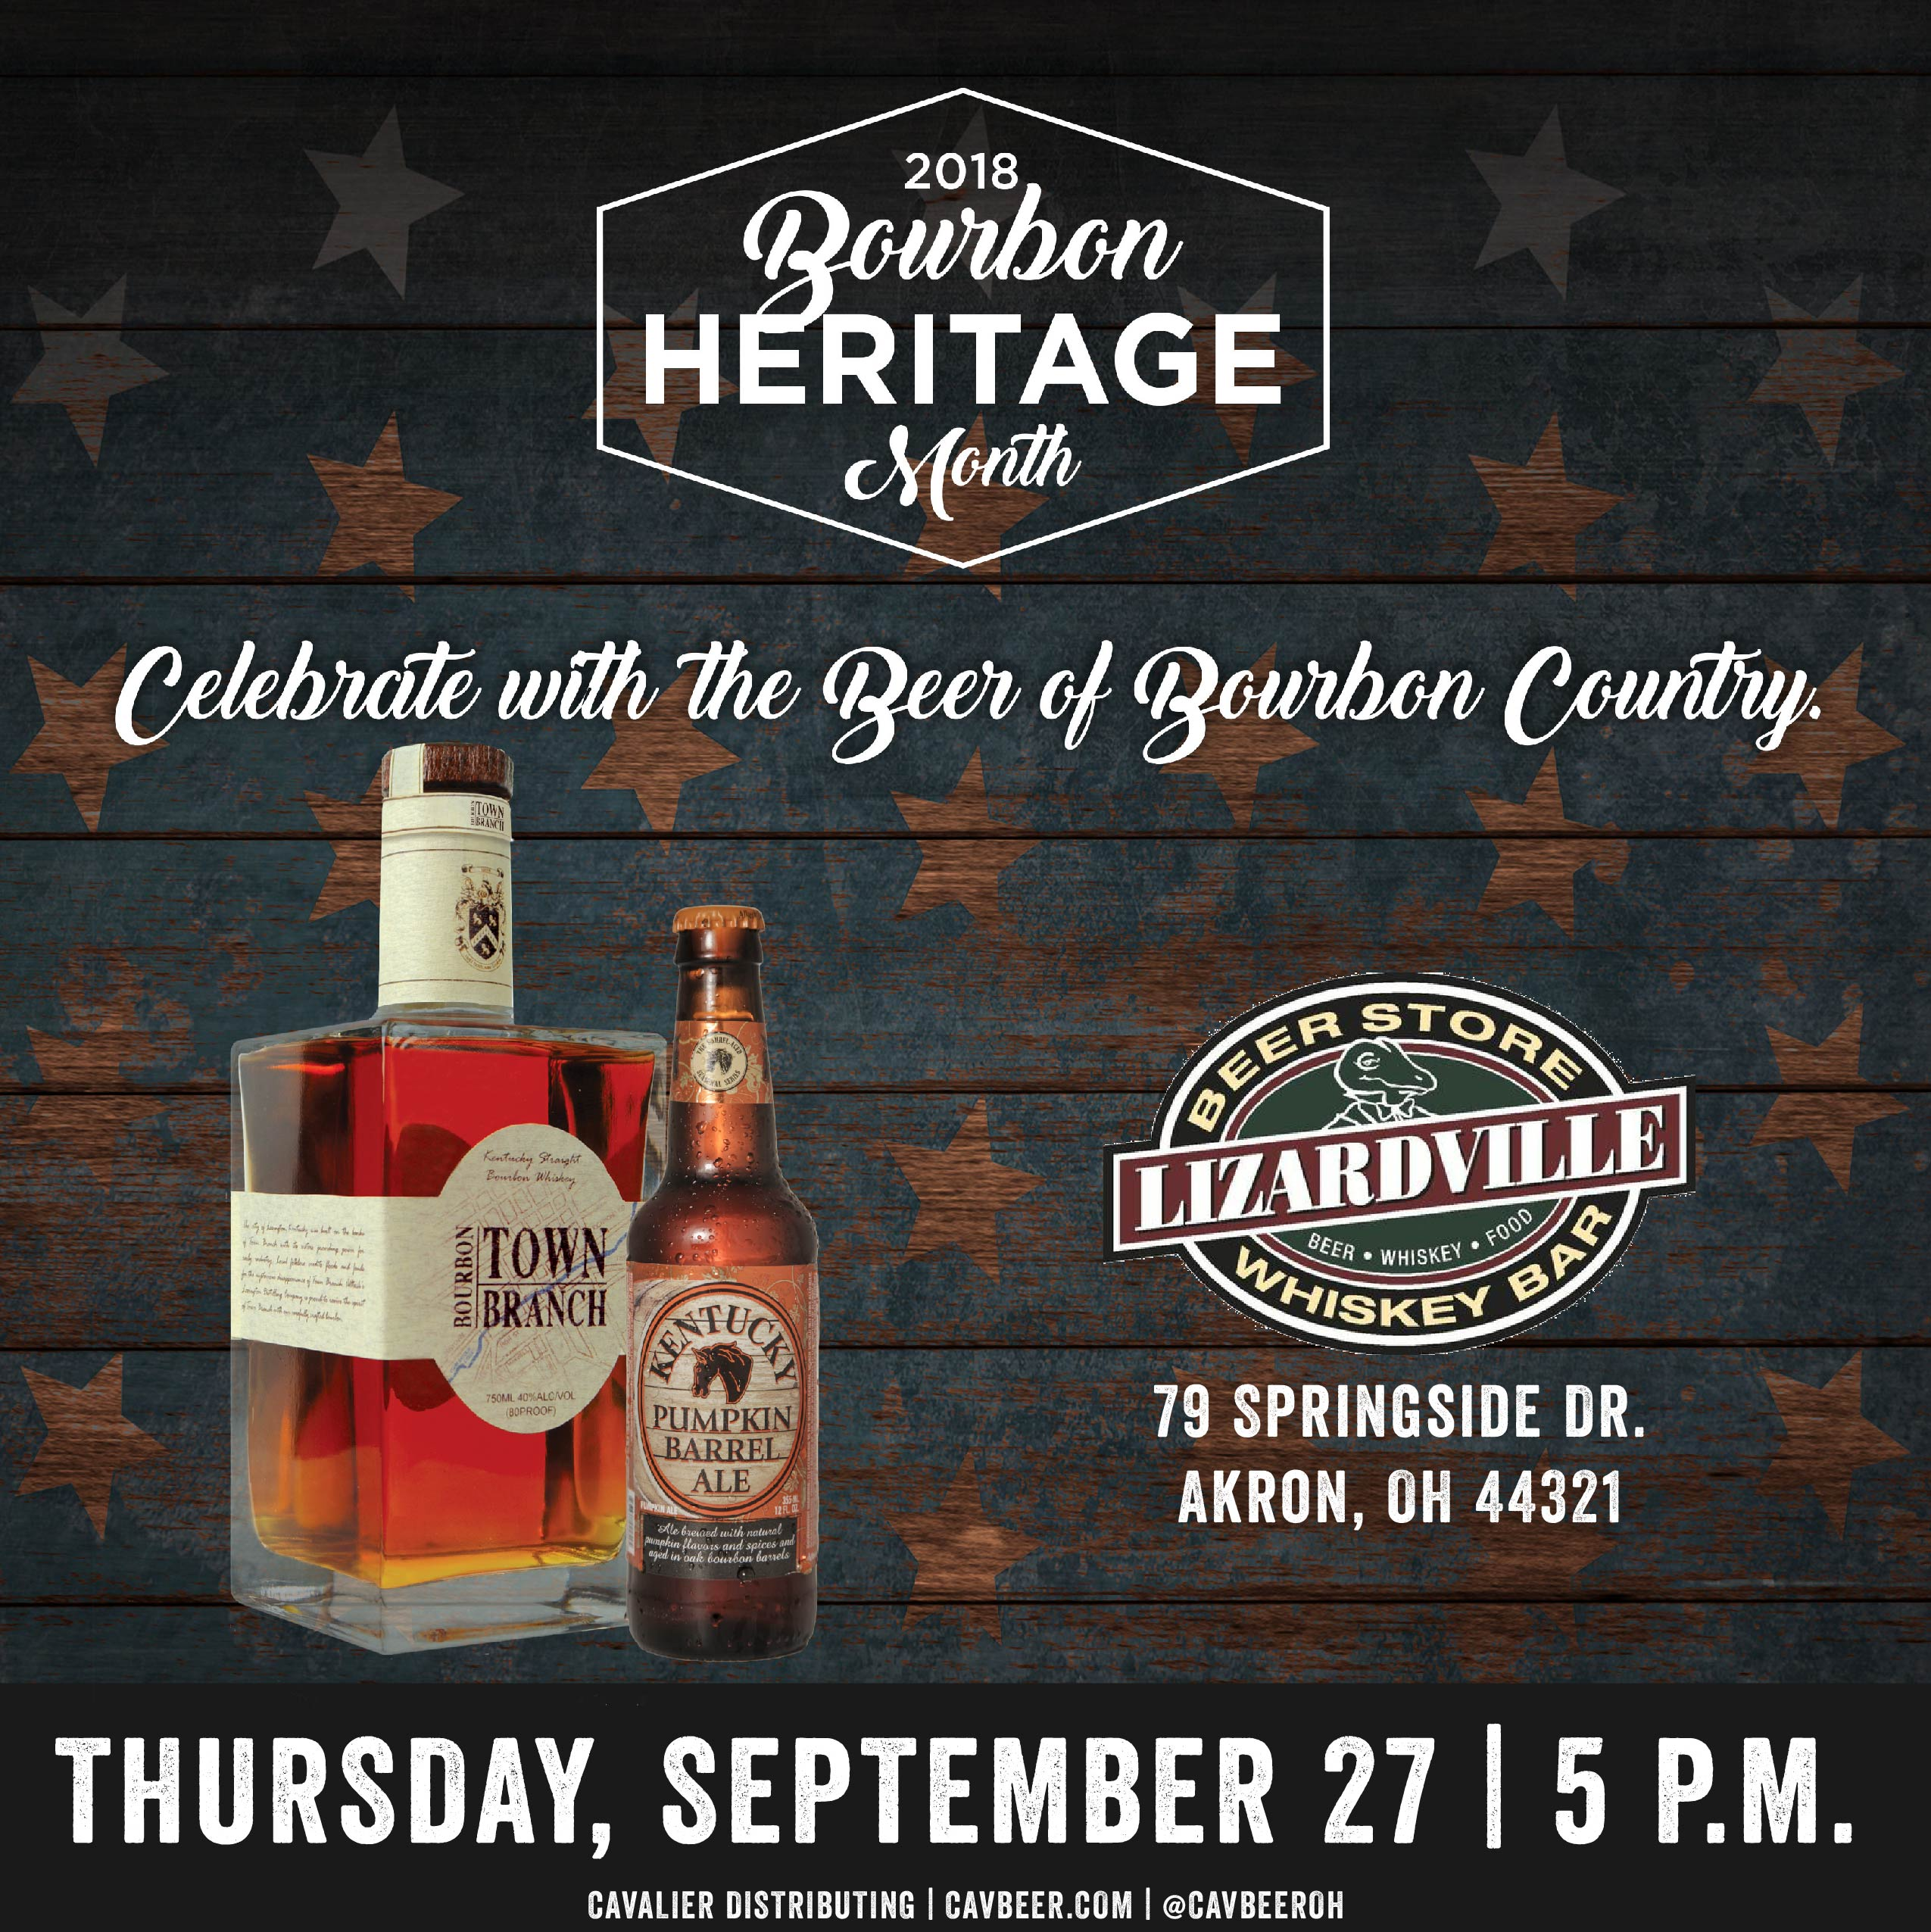 Celebrate Bourbon Heritage Month with Lexington Brewing and Distilling Co. @ Lizardville – Akron